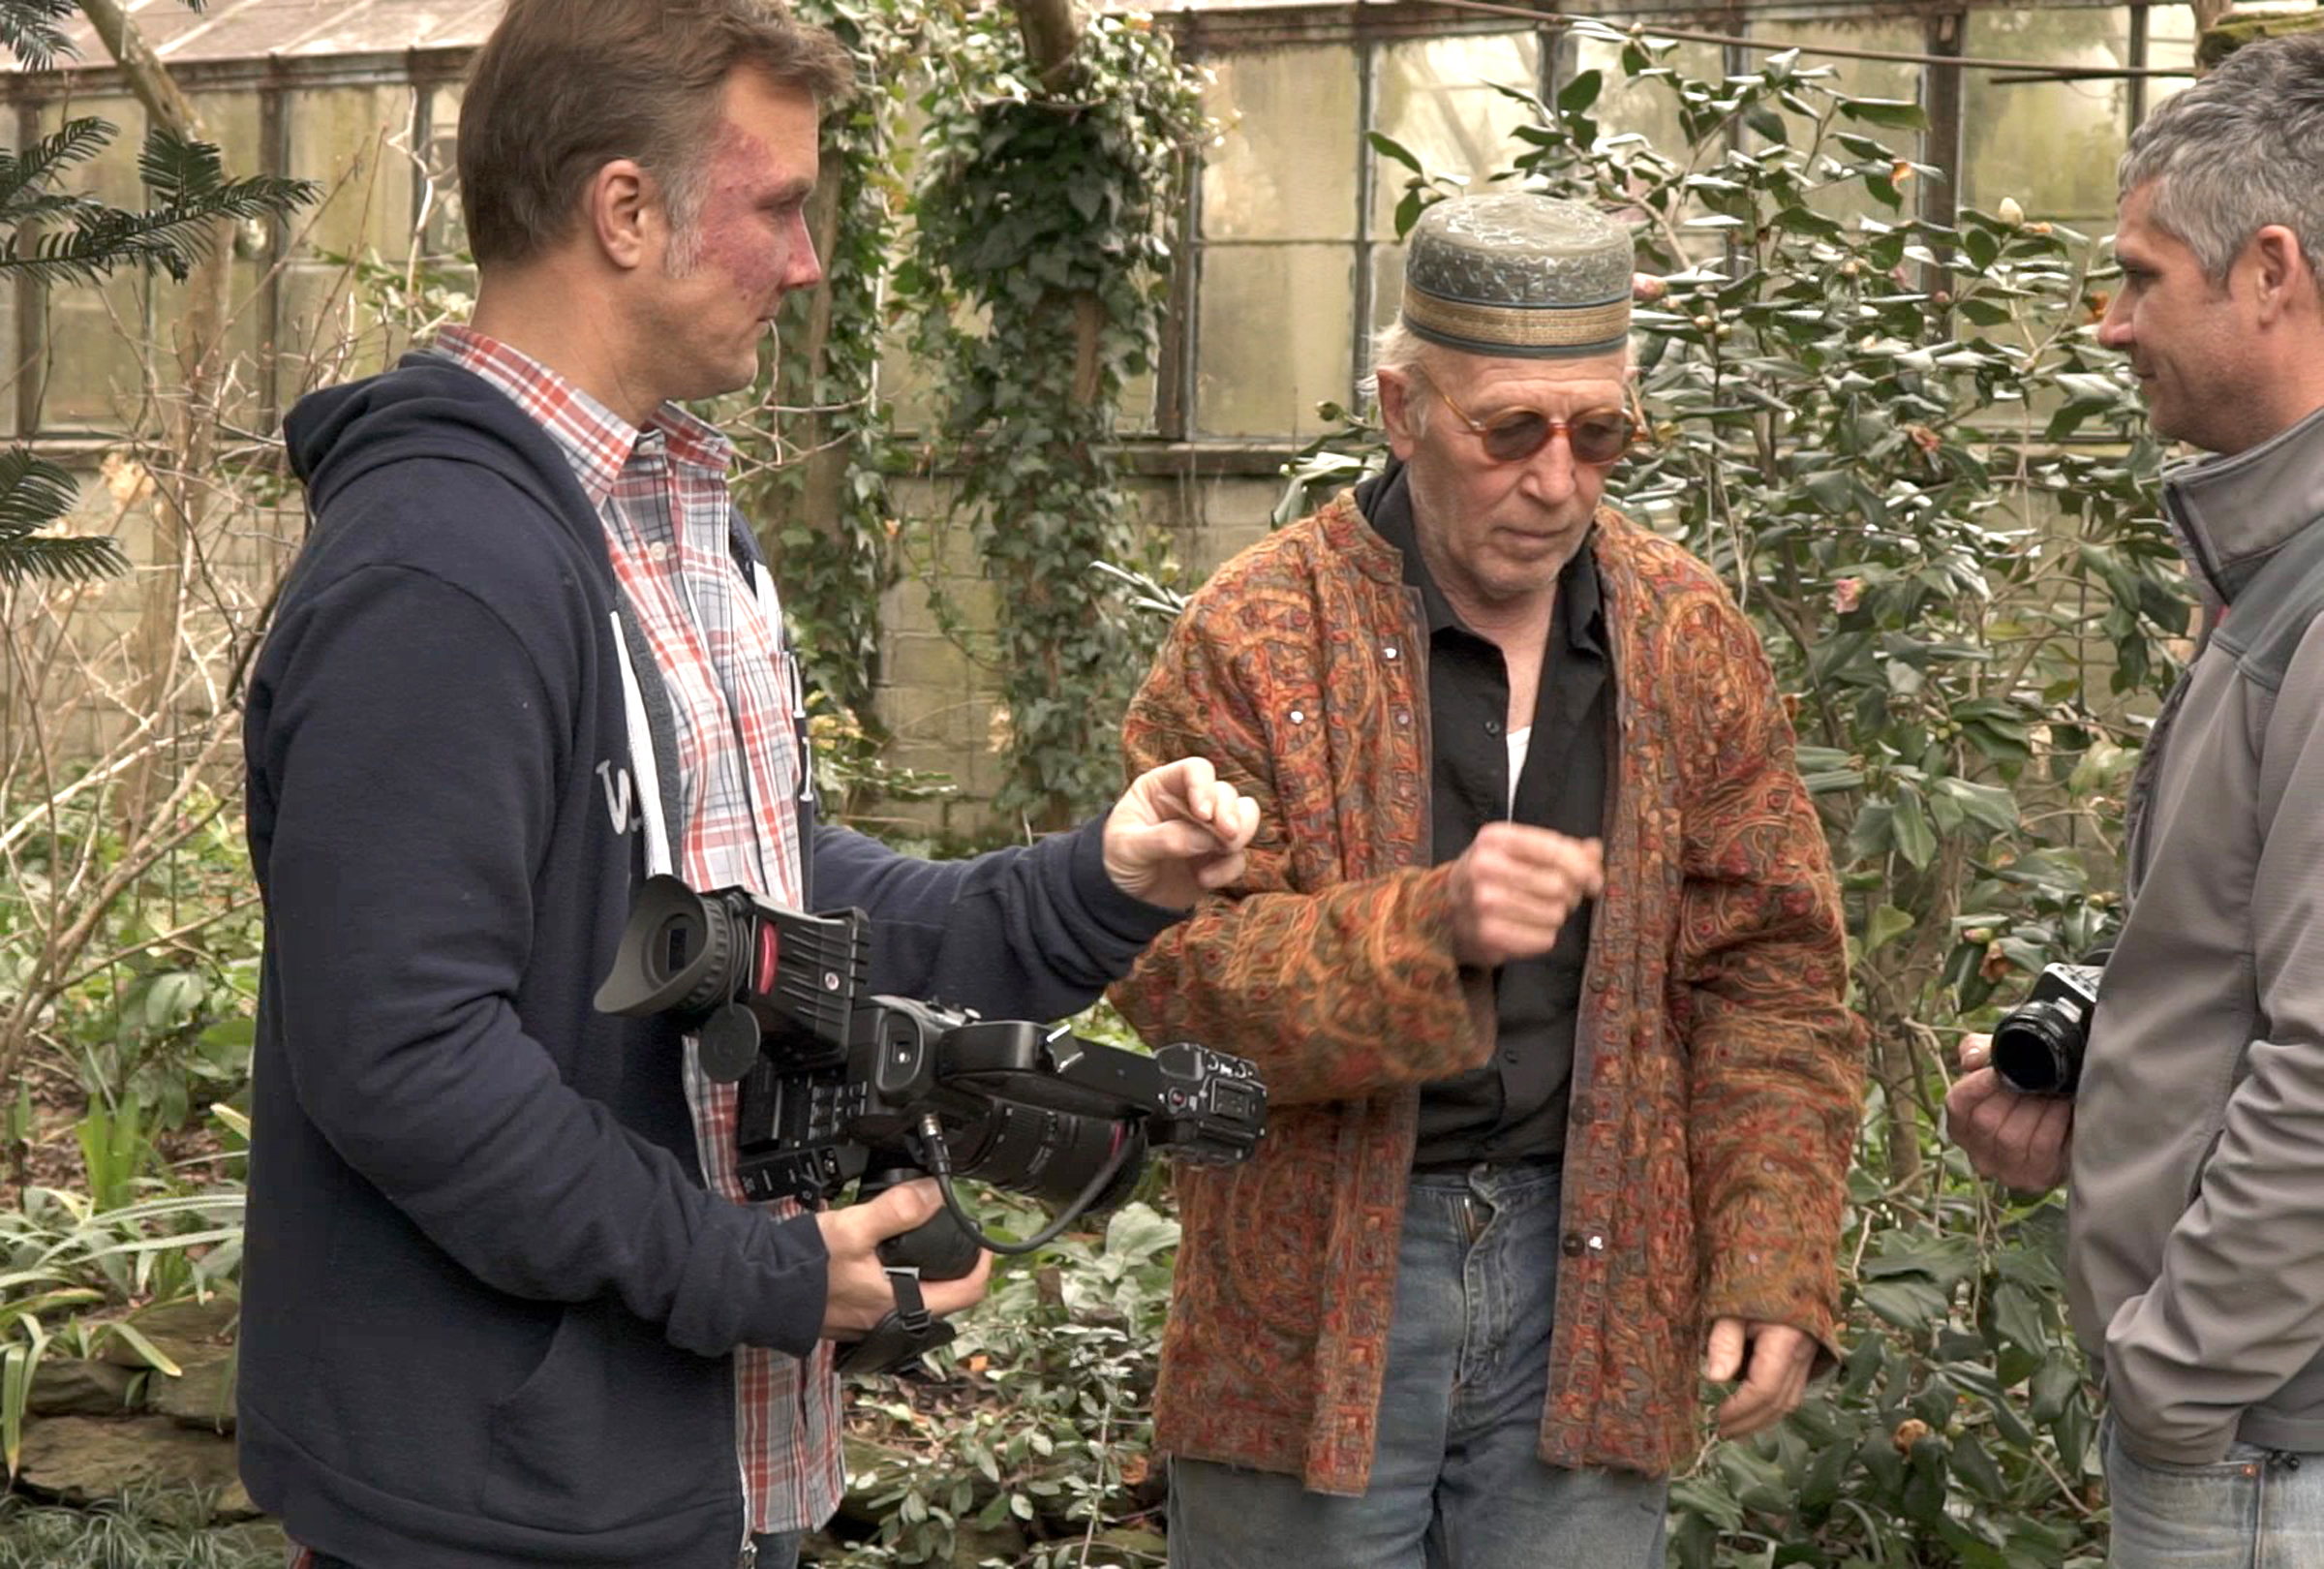 Ryan Gainey is a self taught plantsman and garden designer featured in the documentary The Well-Placed Weed: The Bountiful Gardens of Ryan Gainey. Gainey loved to dress up in unique clothes. (L to R) Steve Bransford, Ryan Gainey and Cooper Sanchez.